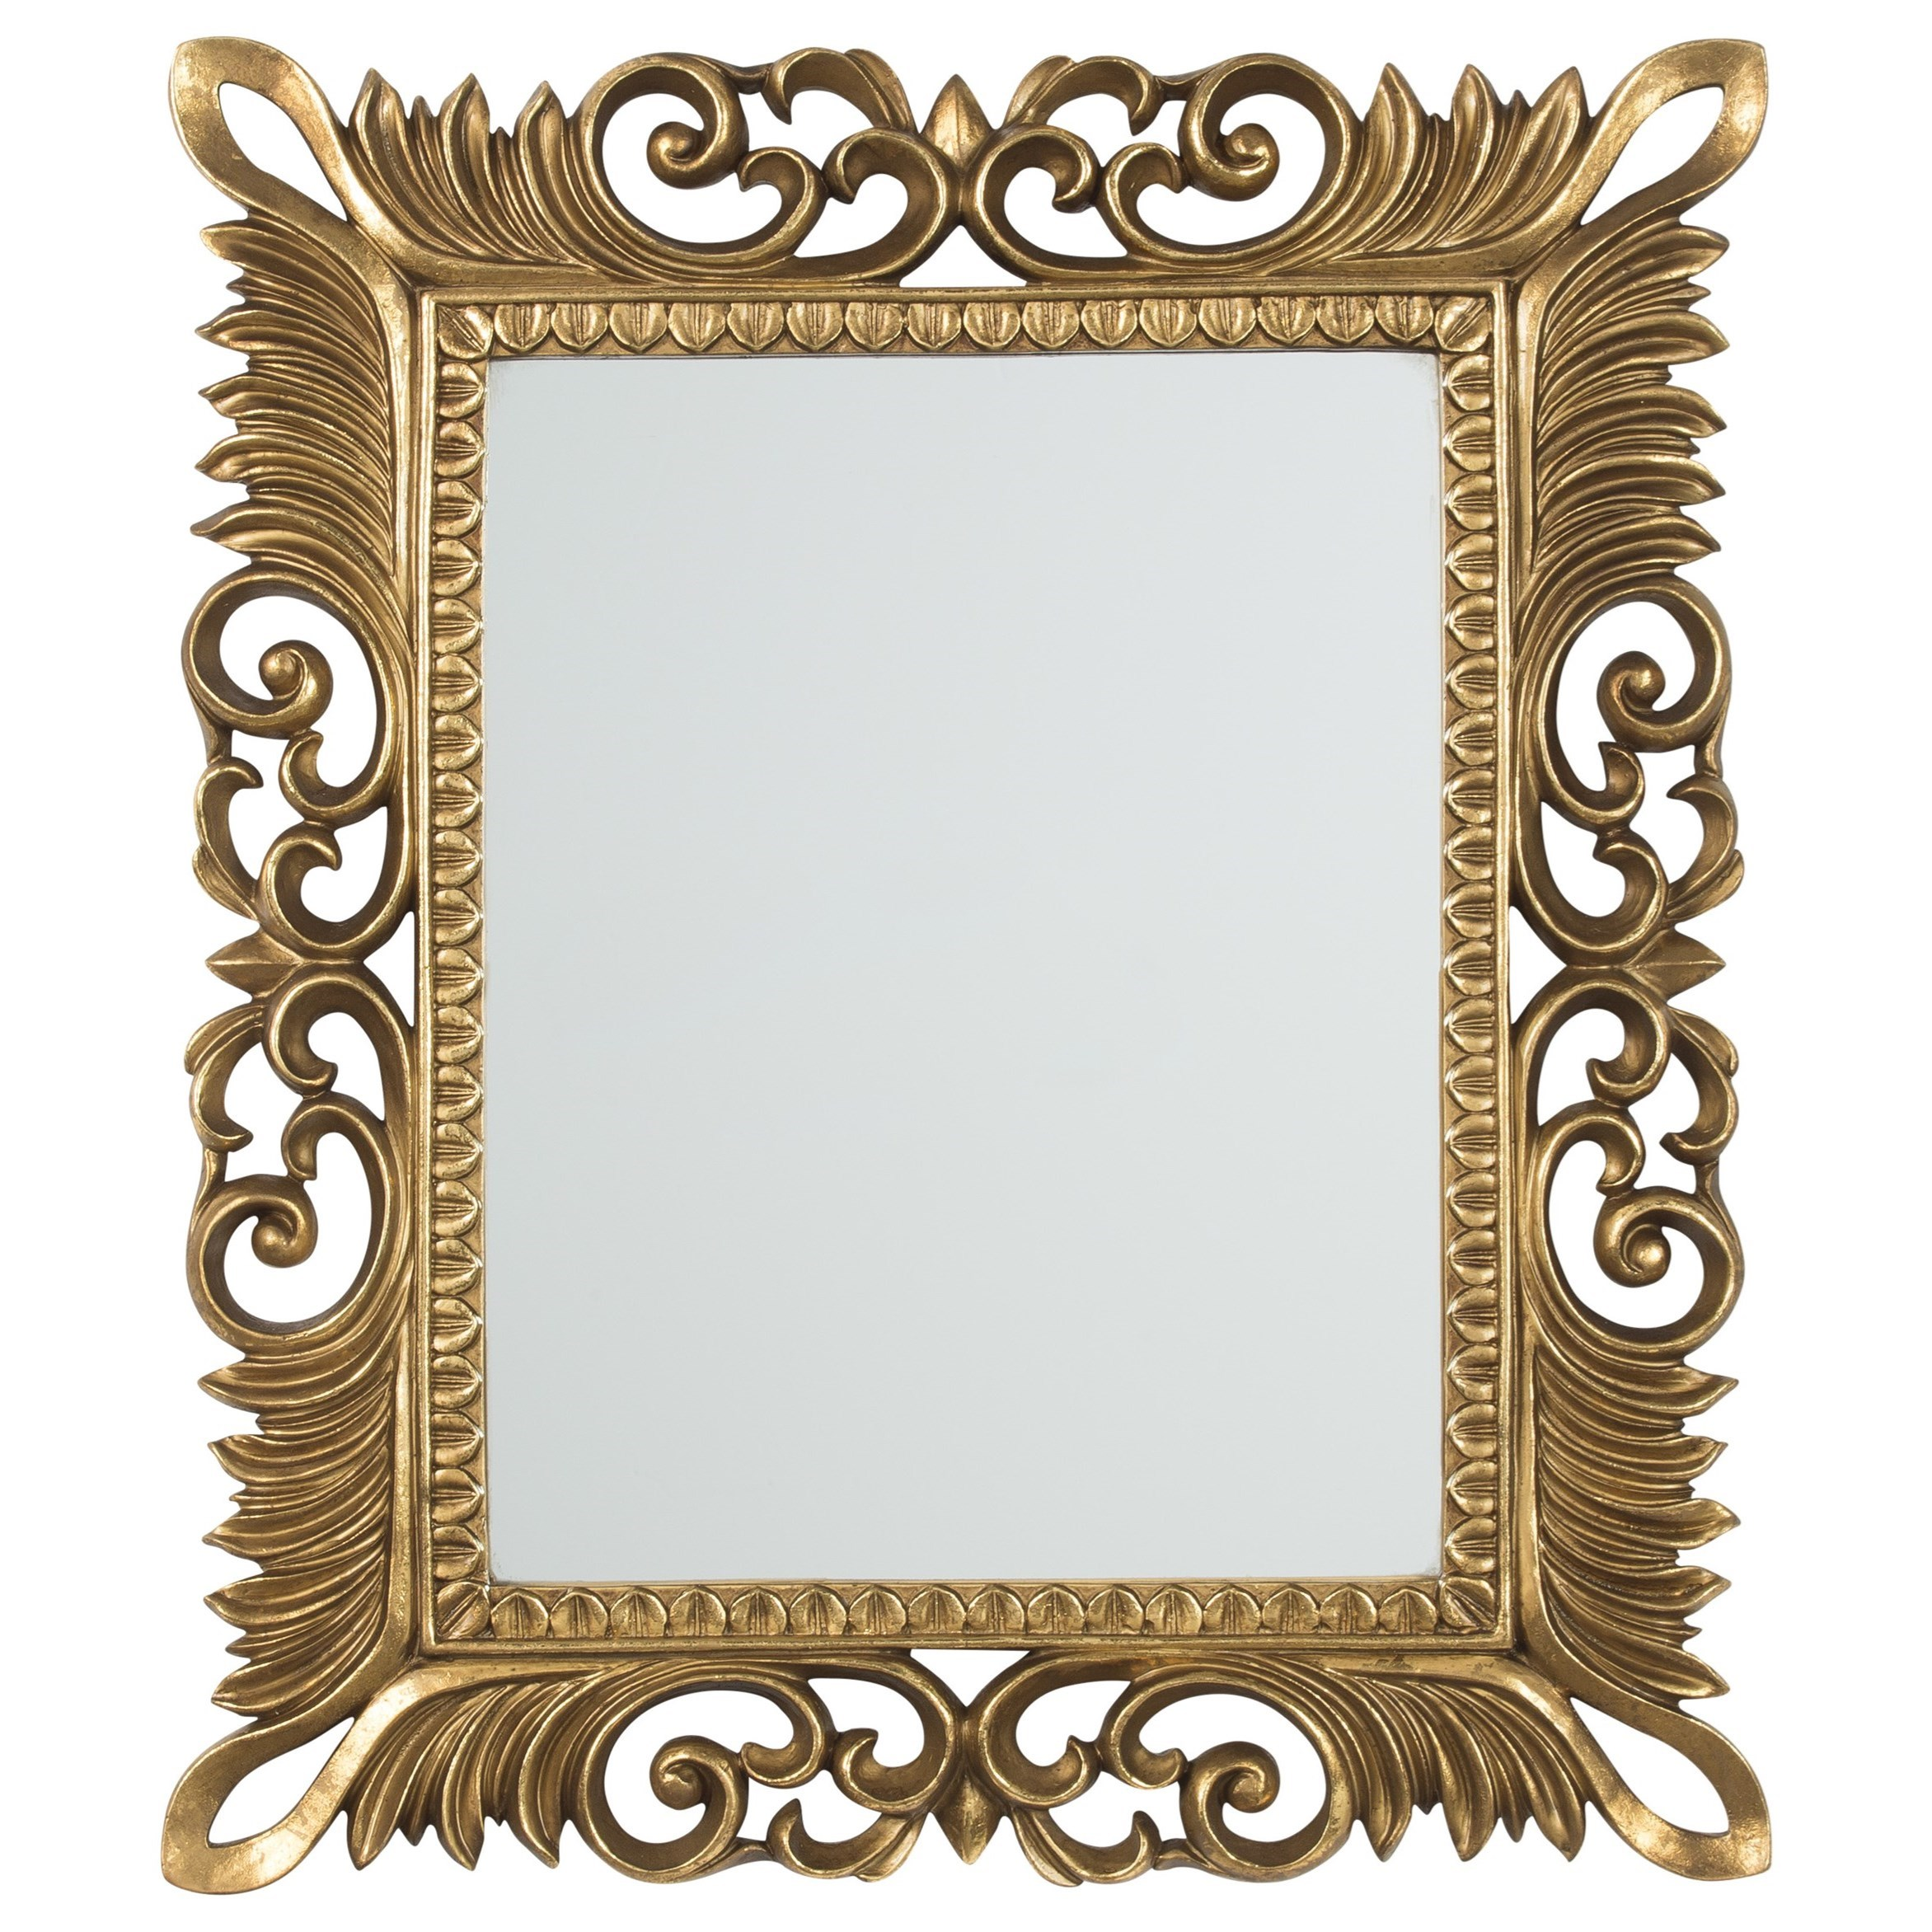 signature design by ashley accent mirrors denisha antique gold  - signature design by ashley accent mirrors denisha antique gold finish accentmirror  item number